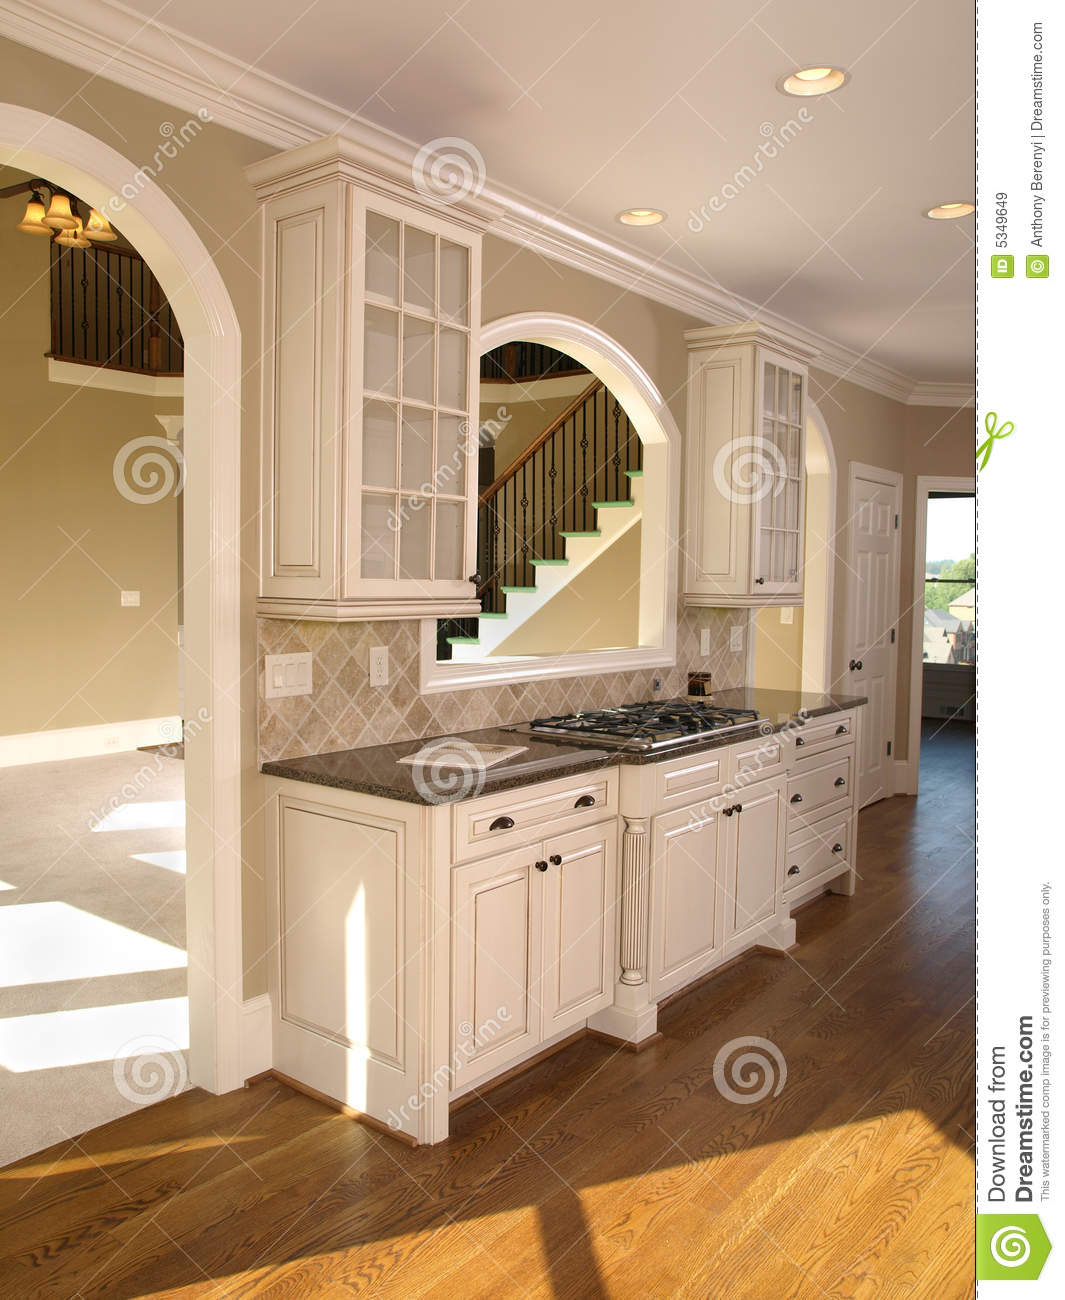 Luxury Model Home White Kitchen Royalty Free Stock Images ... on Model Kitchen  id=91017